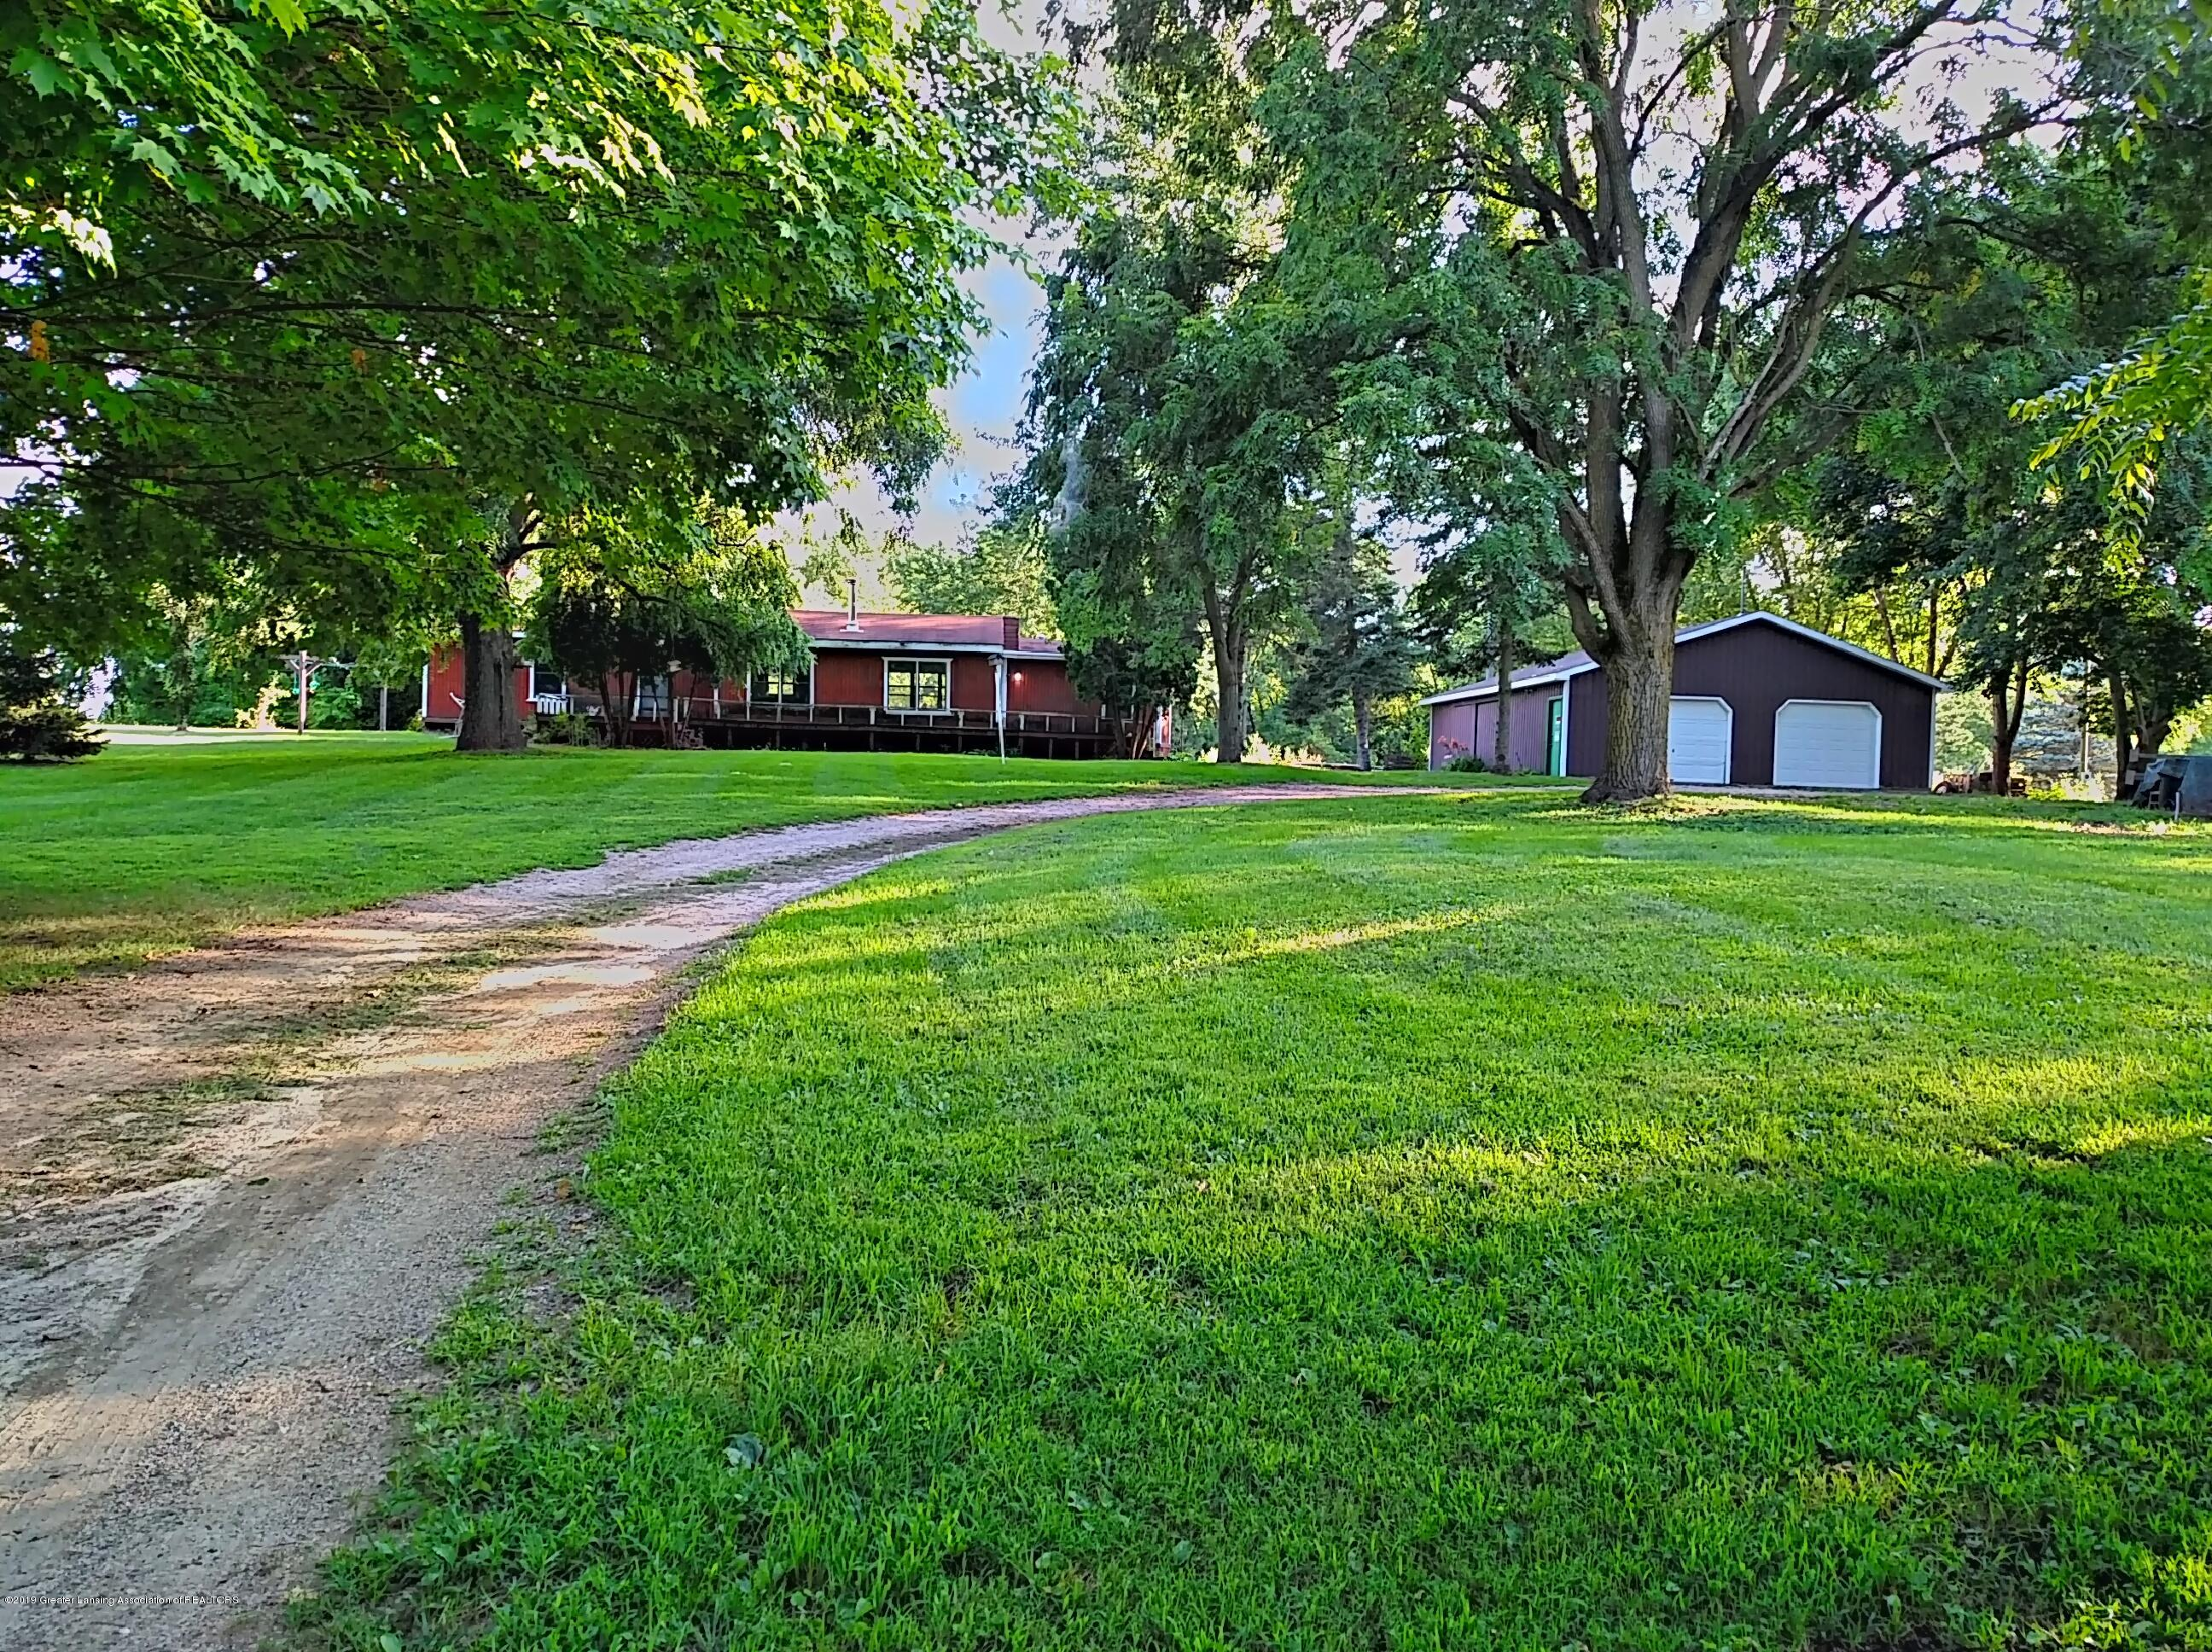 8662 Maple Rd - 2019-08-22_18-41-16_HDR - 1